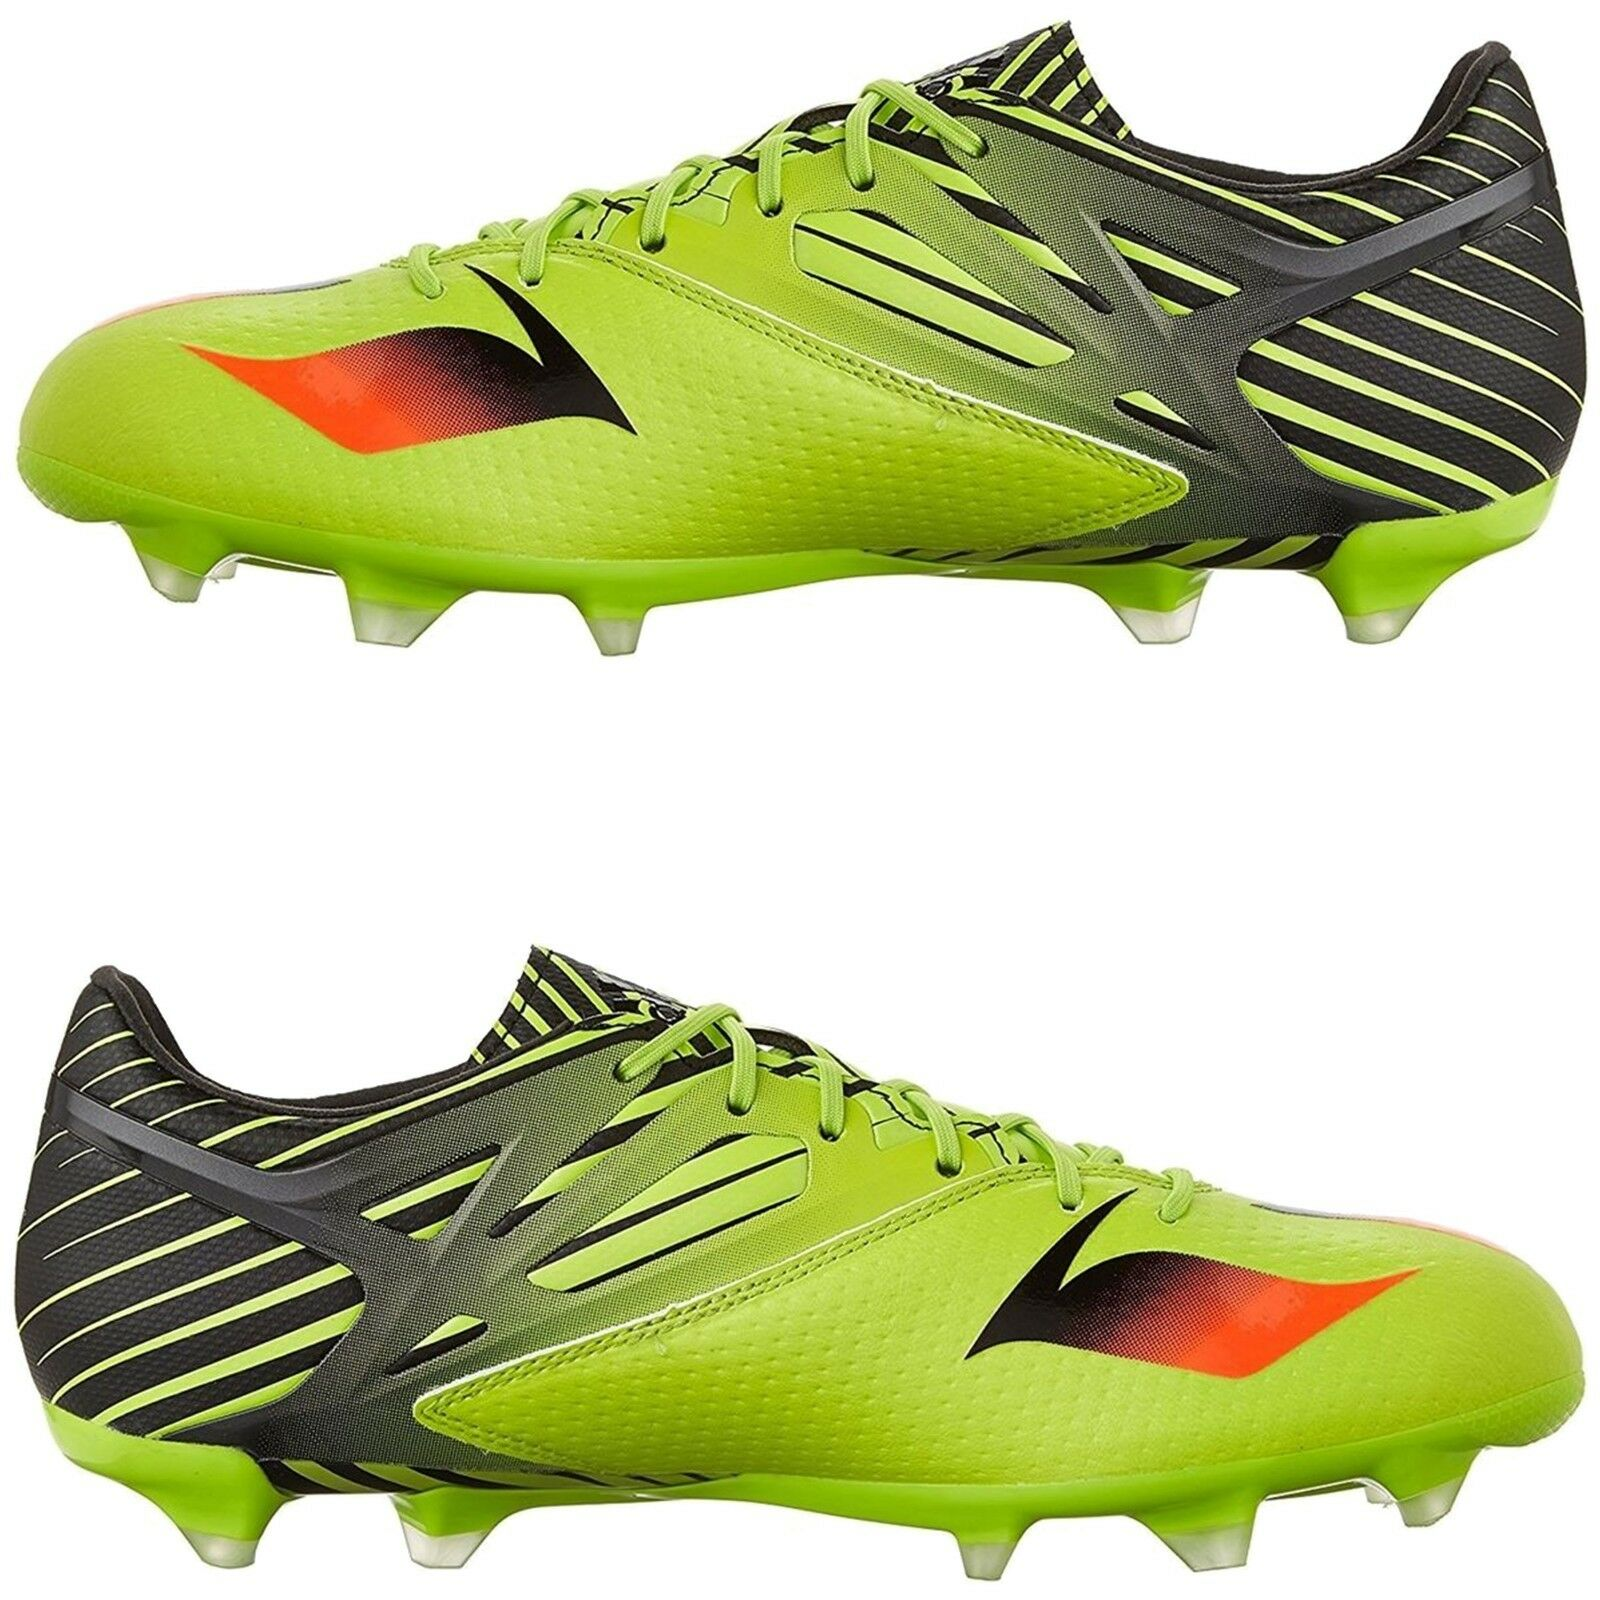 Adidas Men Athletic shoes Messi 15.2 Soccer shoes Semi Solar Slime Cleats